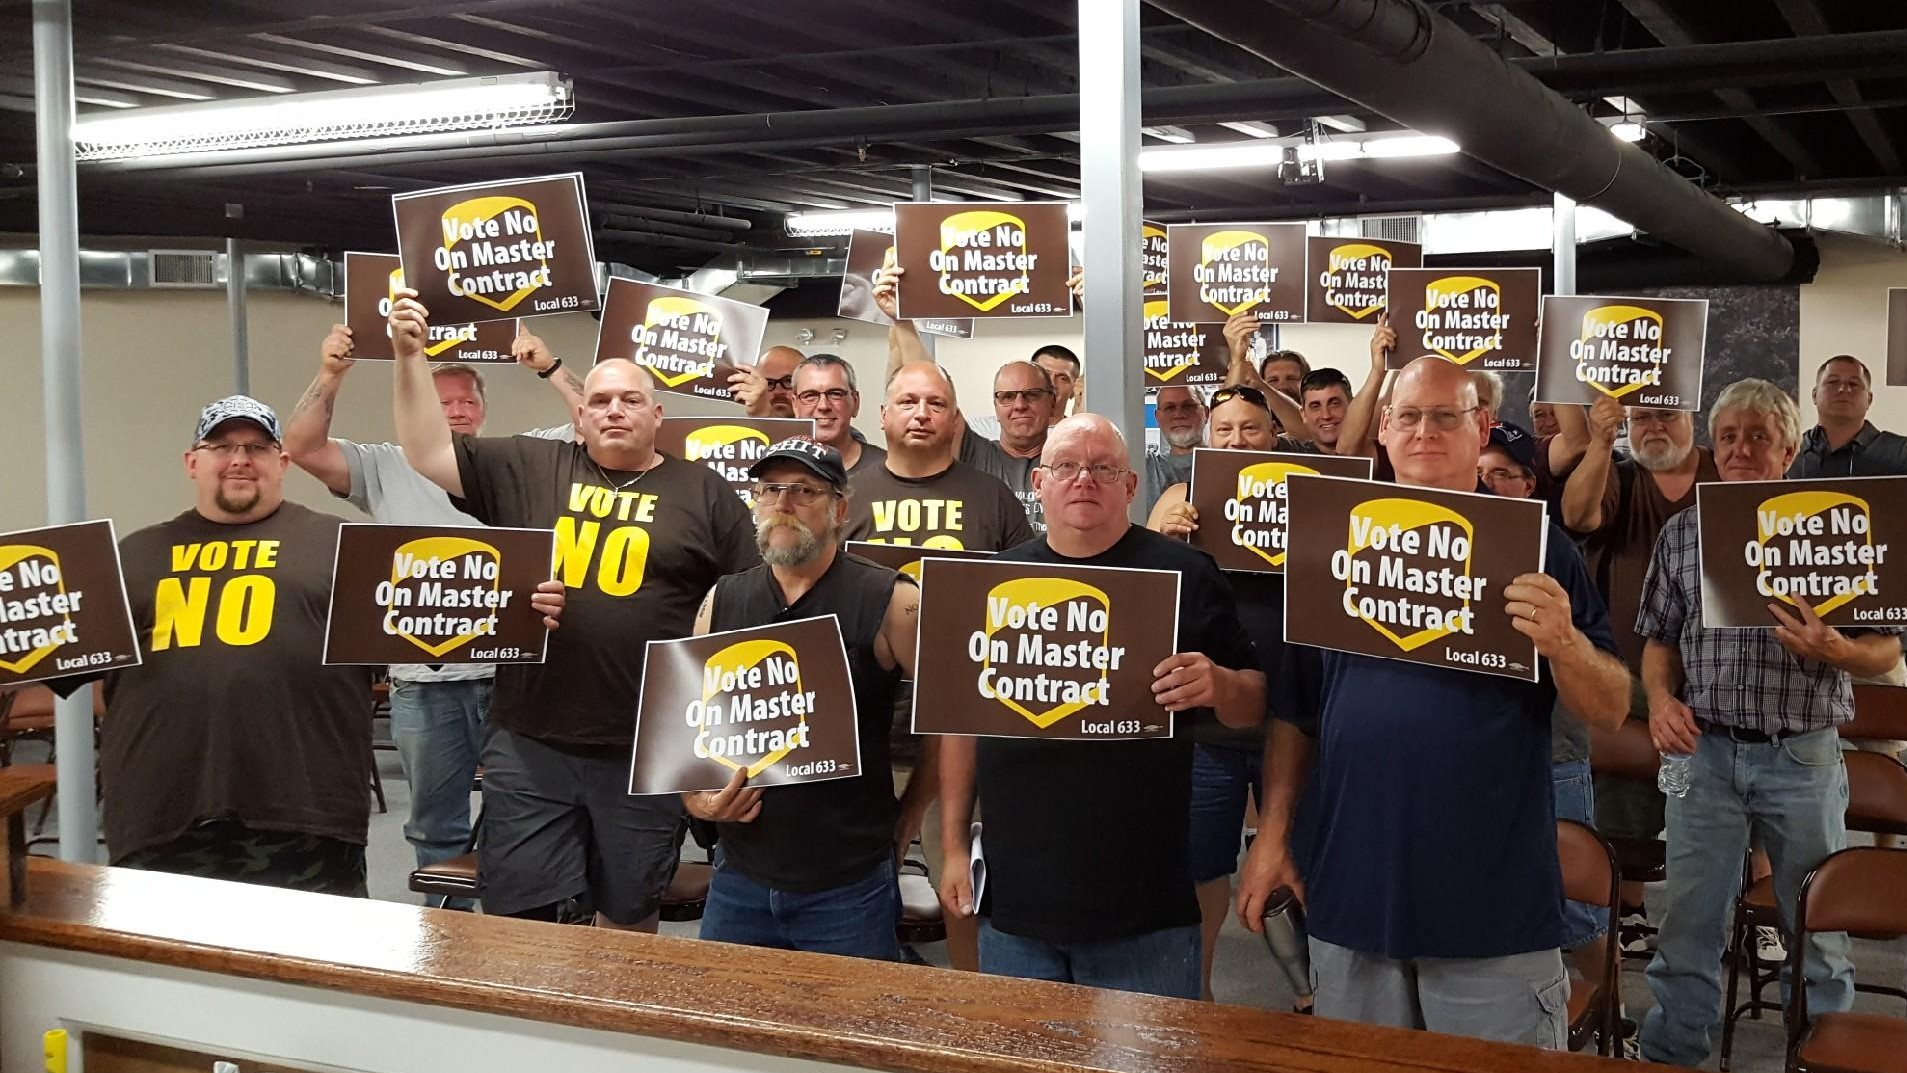 United Parcel Service Teamsters Local 633